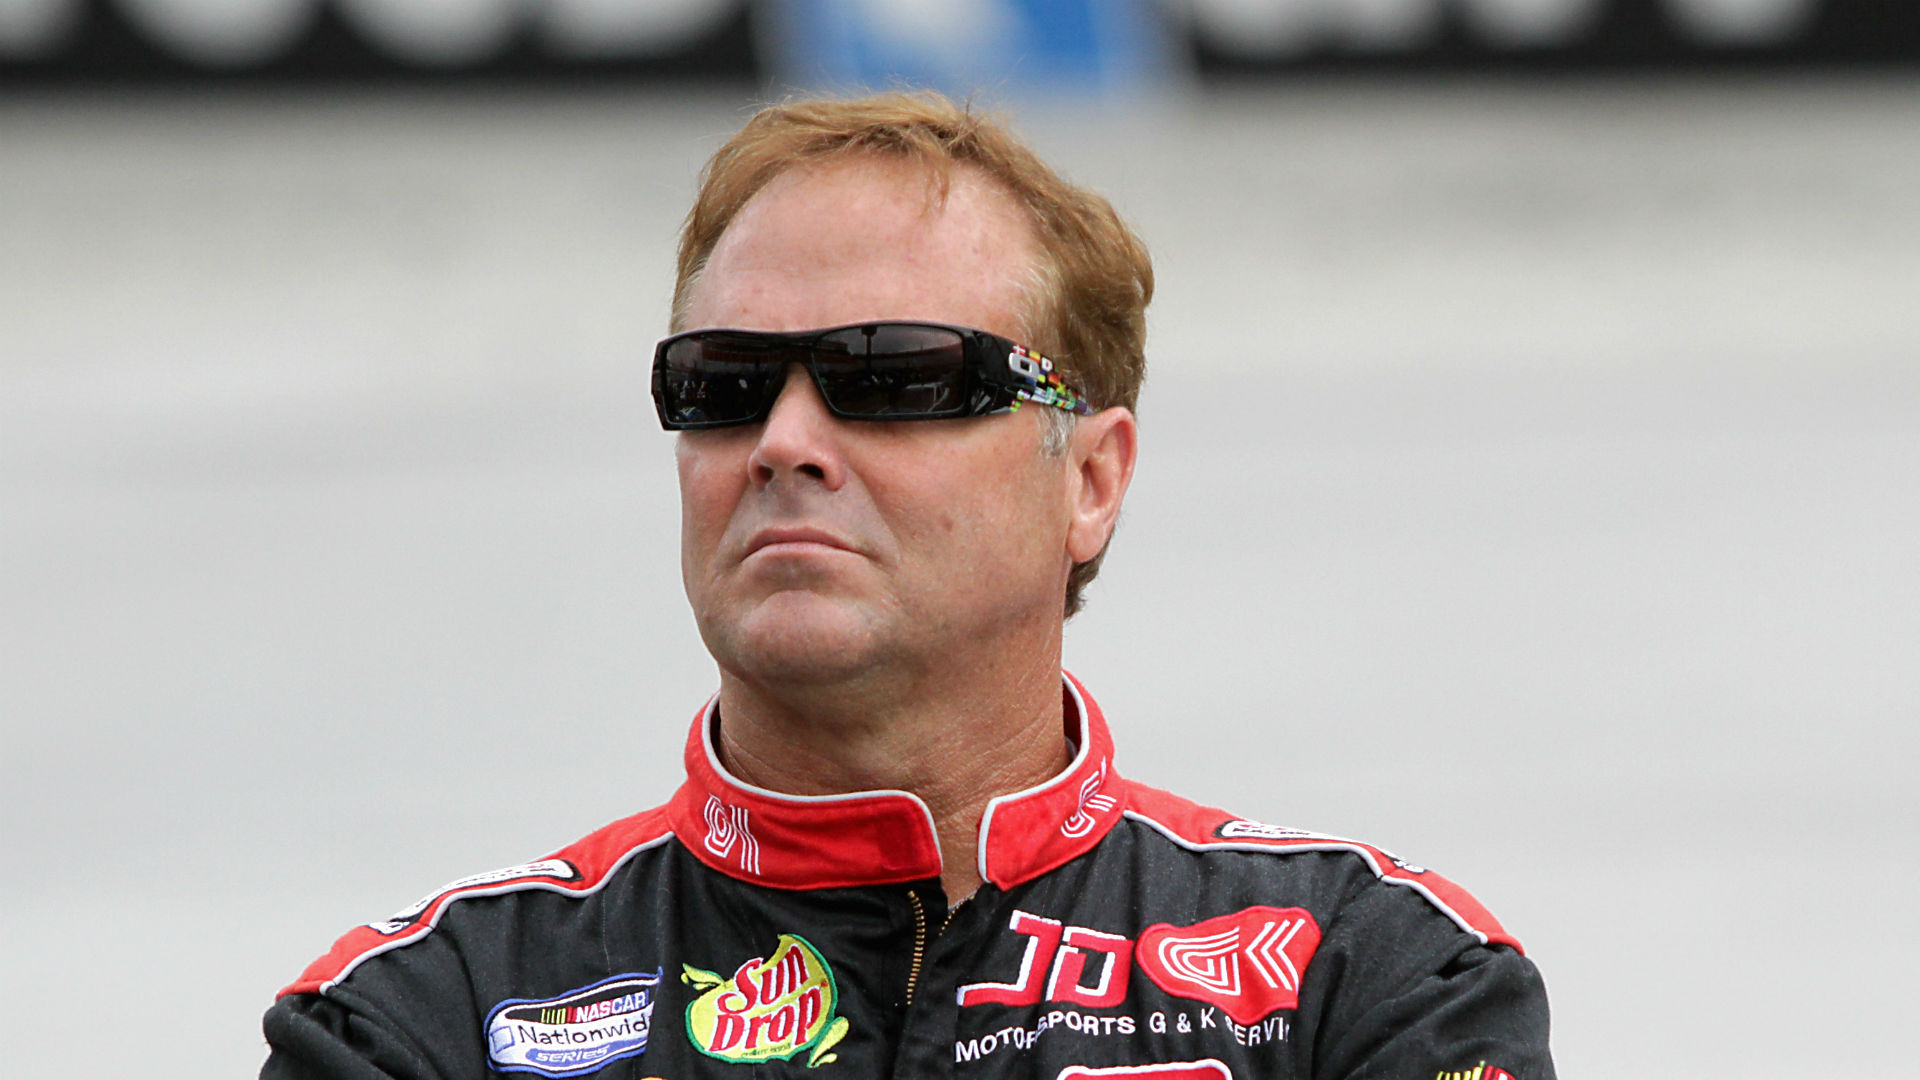 Mike Wallace (racing driver) Veteran NASCAR driver Mike Wallace allegedly attacked beaten after